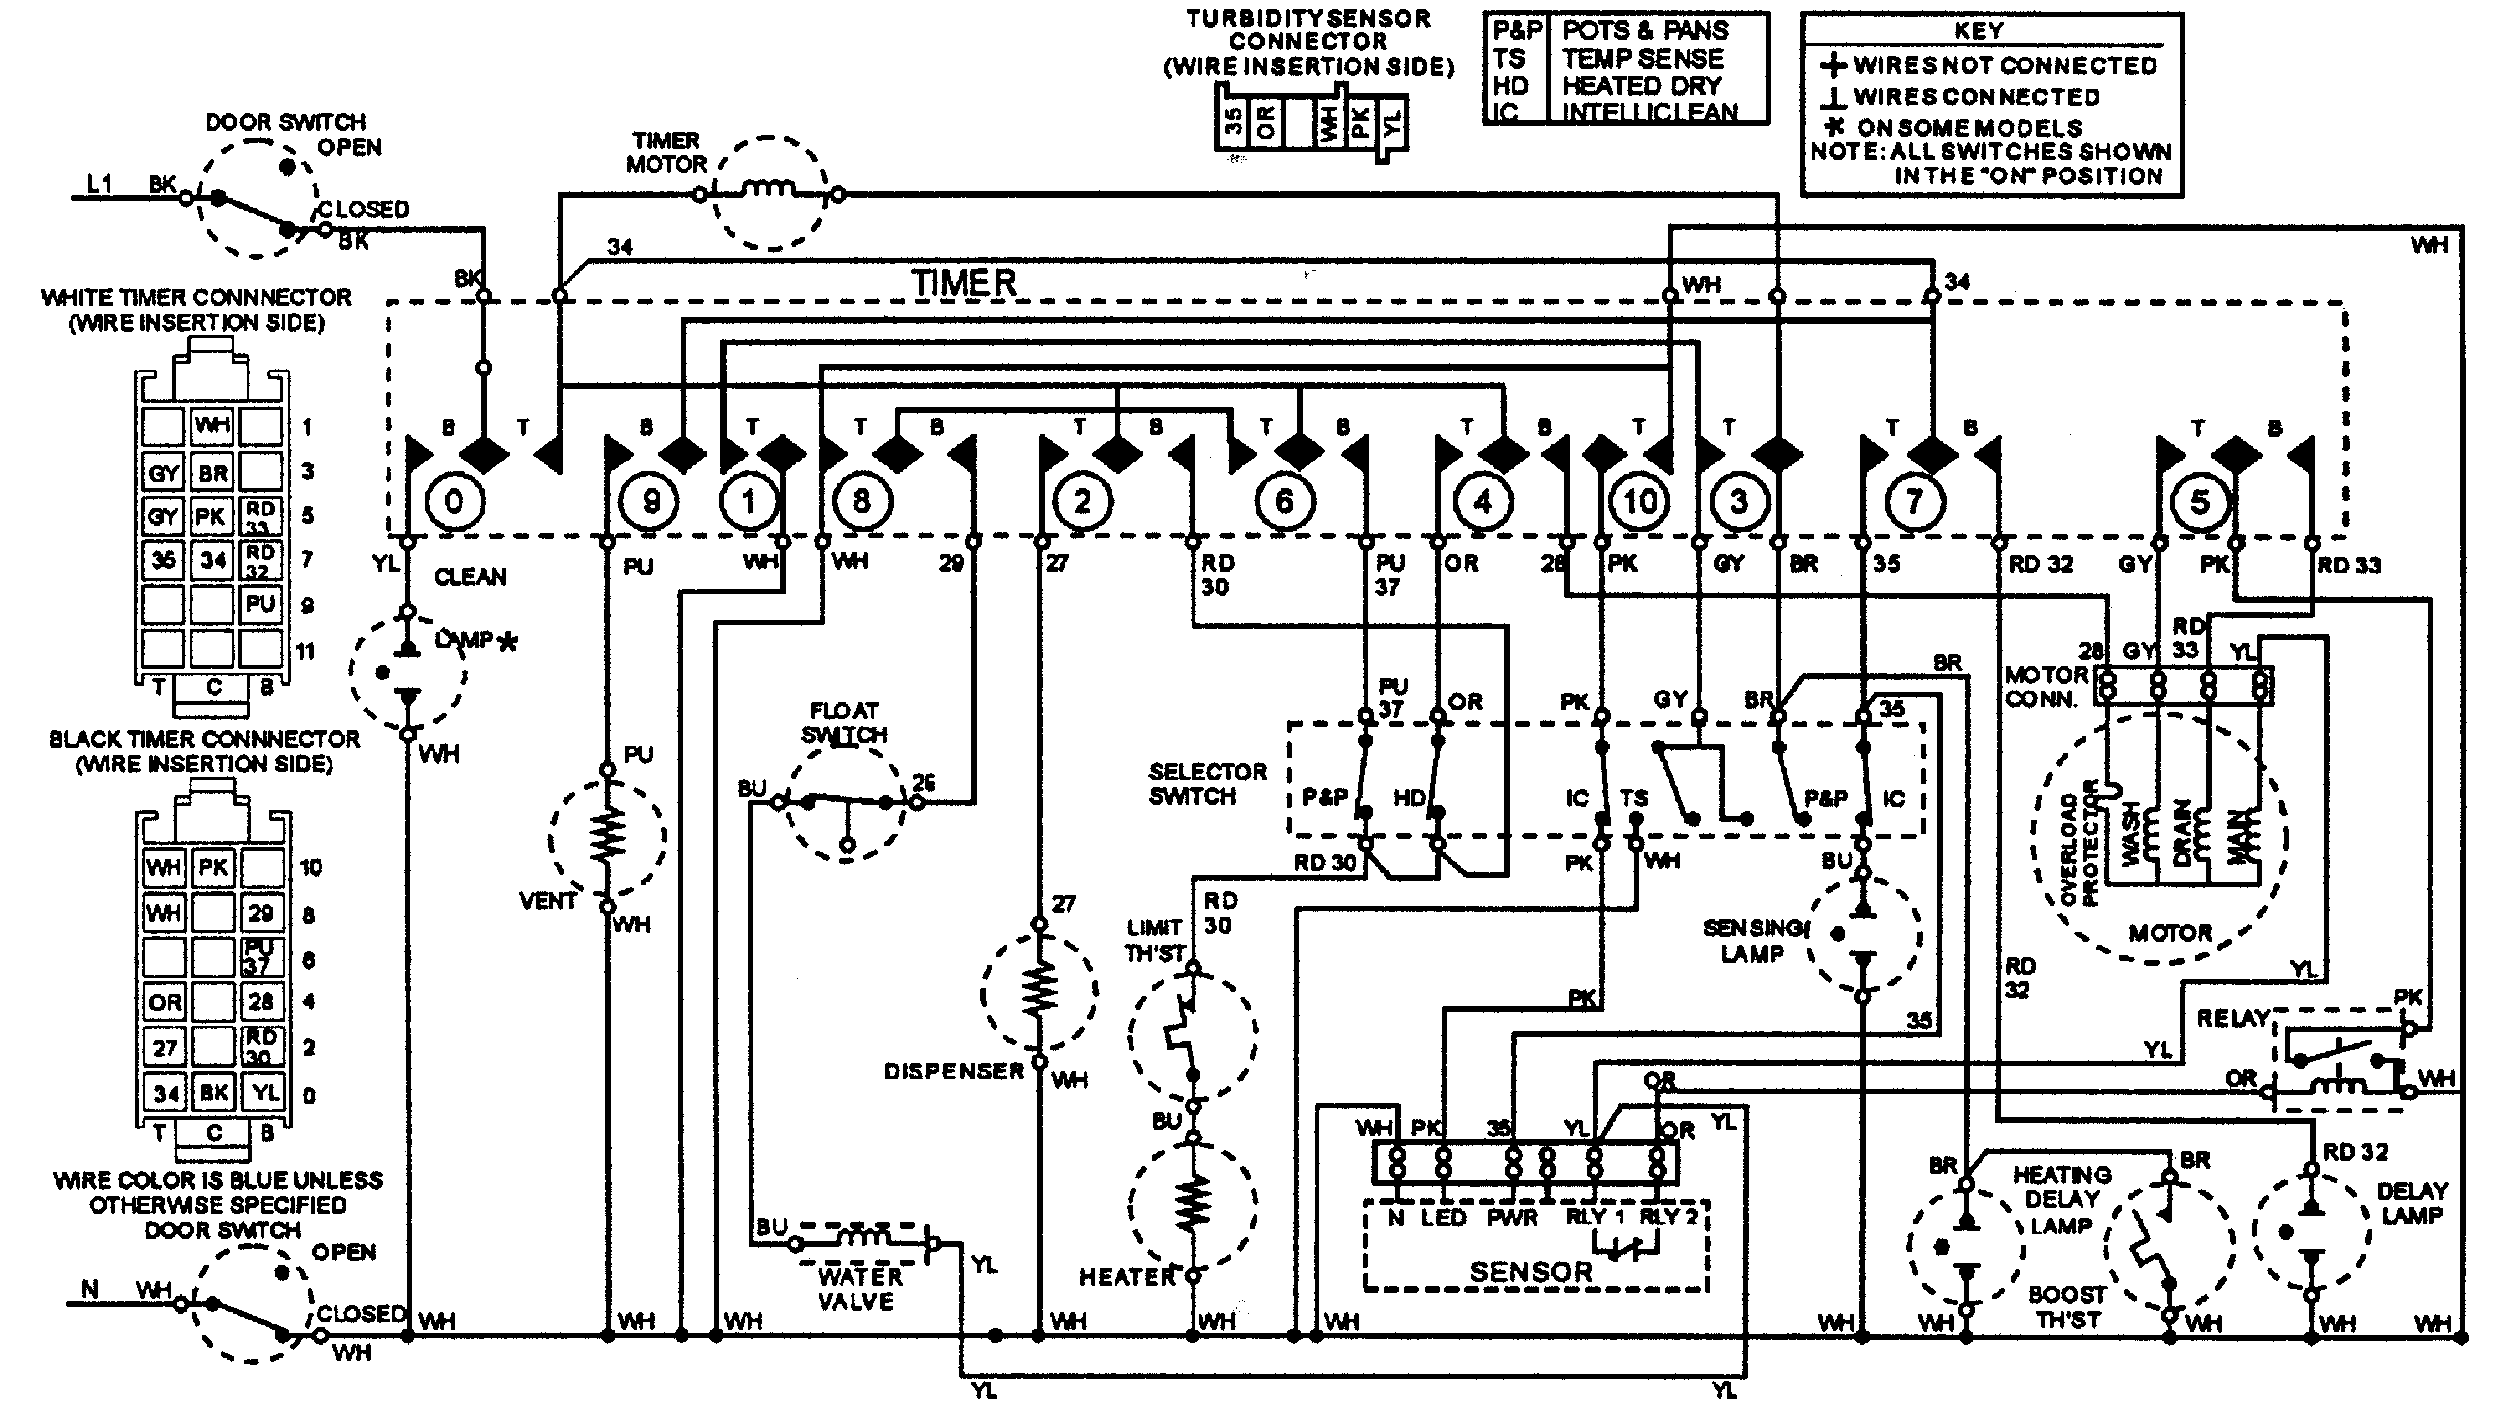 Schematic Maytag Washer Timer Switch Wiring Diagrams Cost Adjustable Function Generator Circuit Diagram Tradeoficcom Mdb6000awa Stove Clocks And Appliance Timers Rh Appliancetimers Ca 8700 Replacement Parts Problem